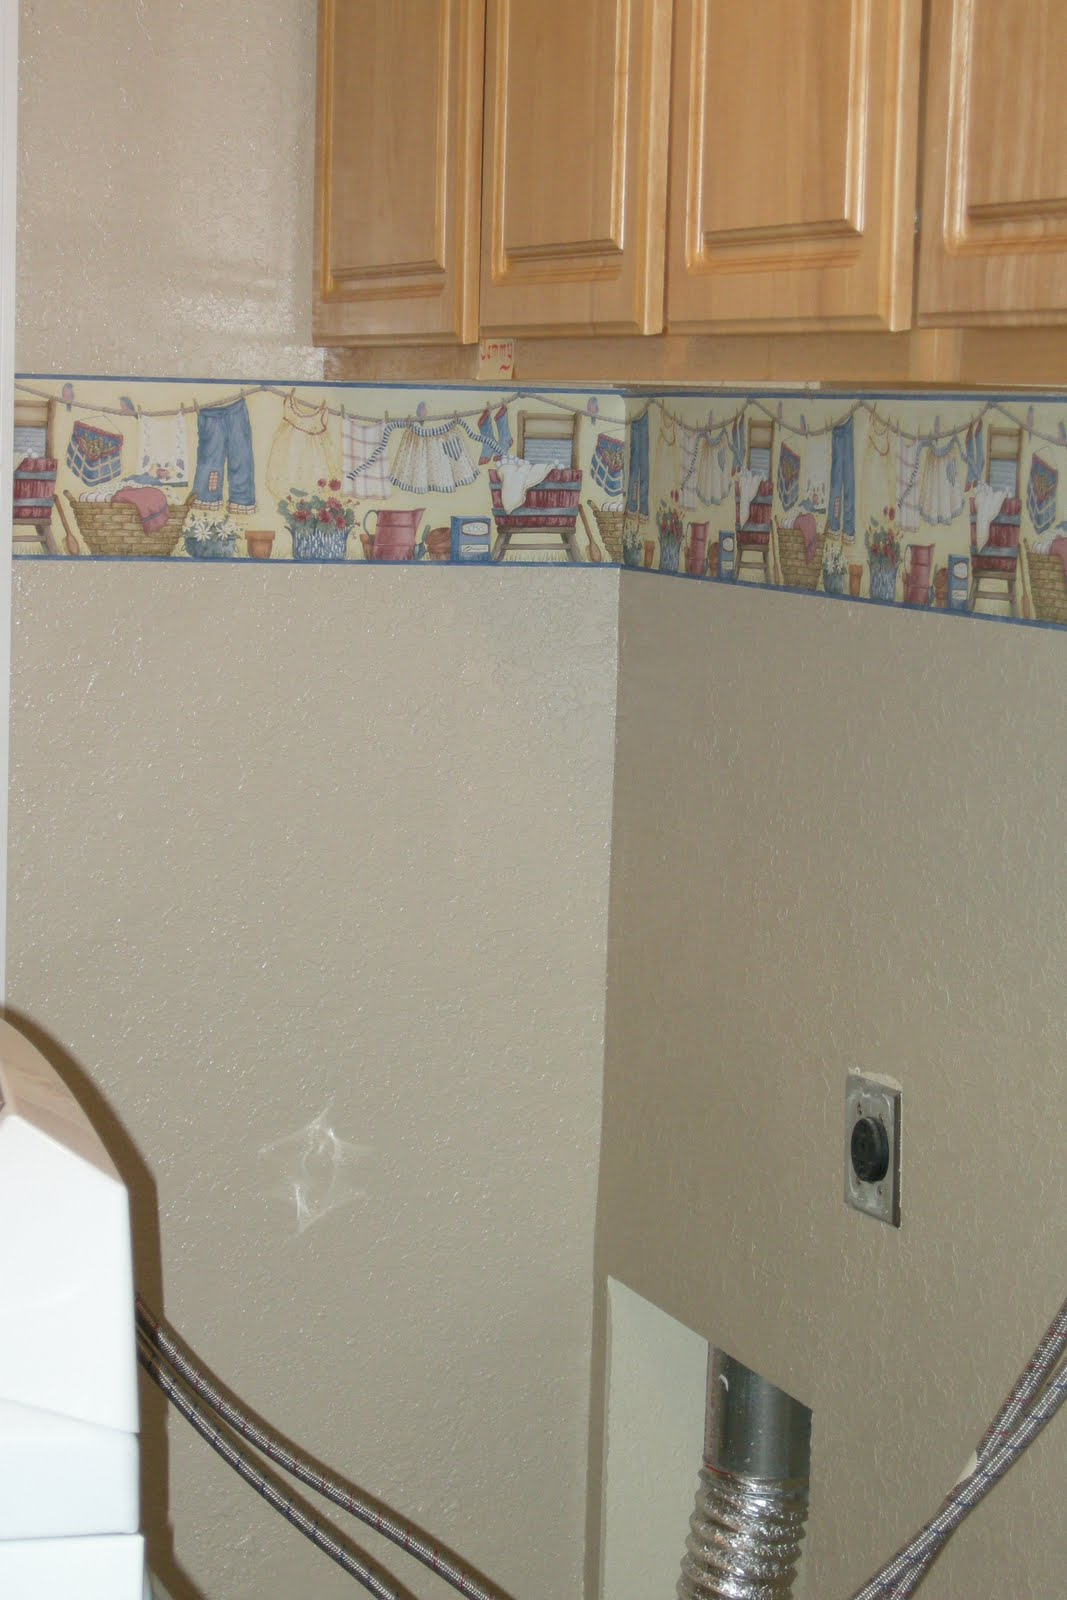 Vintage laundry room wallpaper border